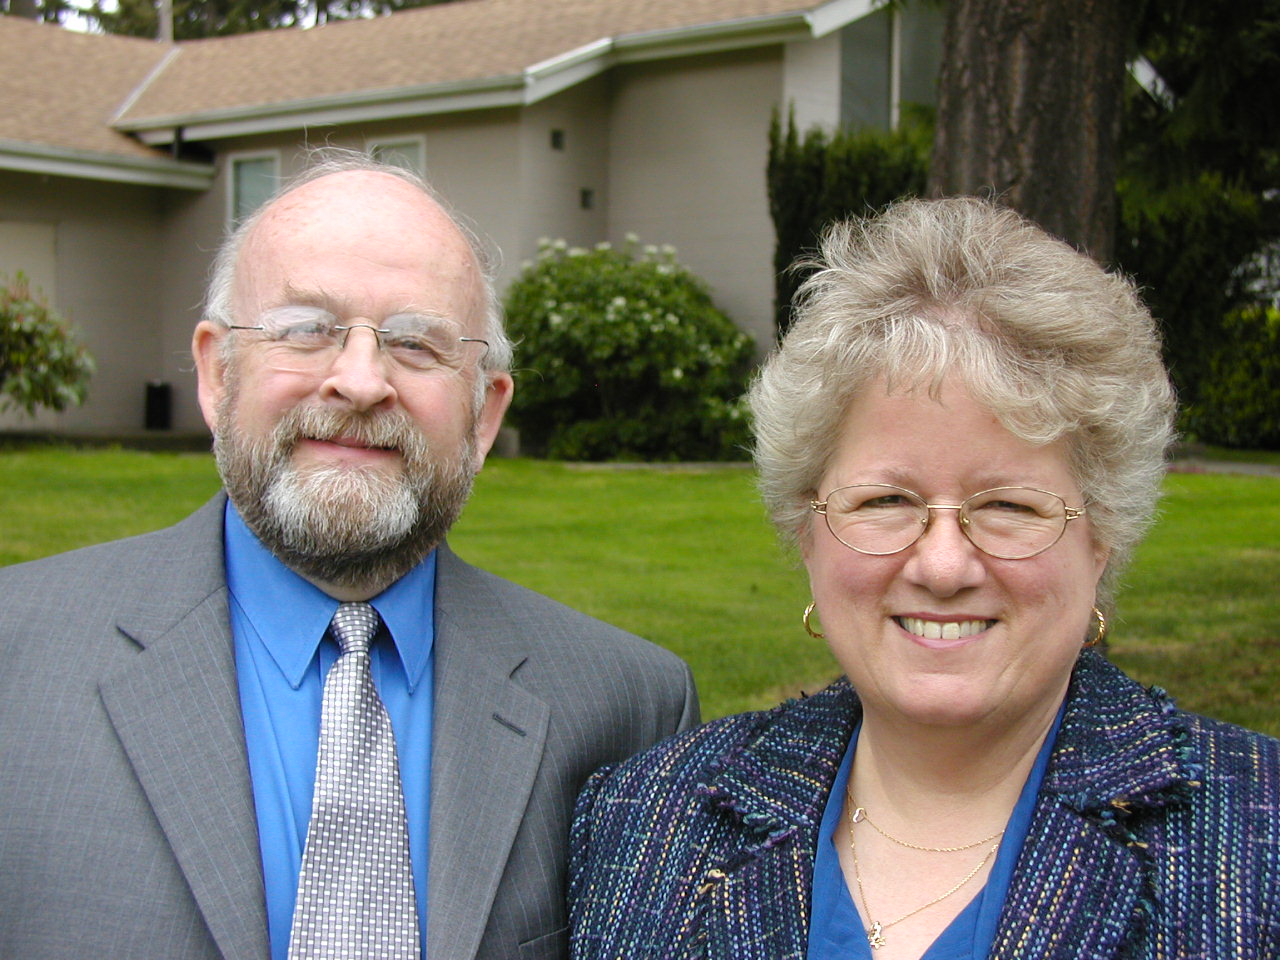 Pastor Dennis Plourde and wife Diane